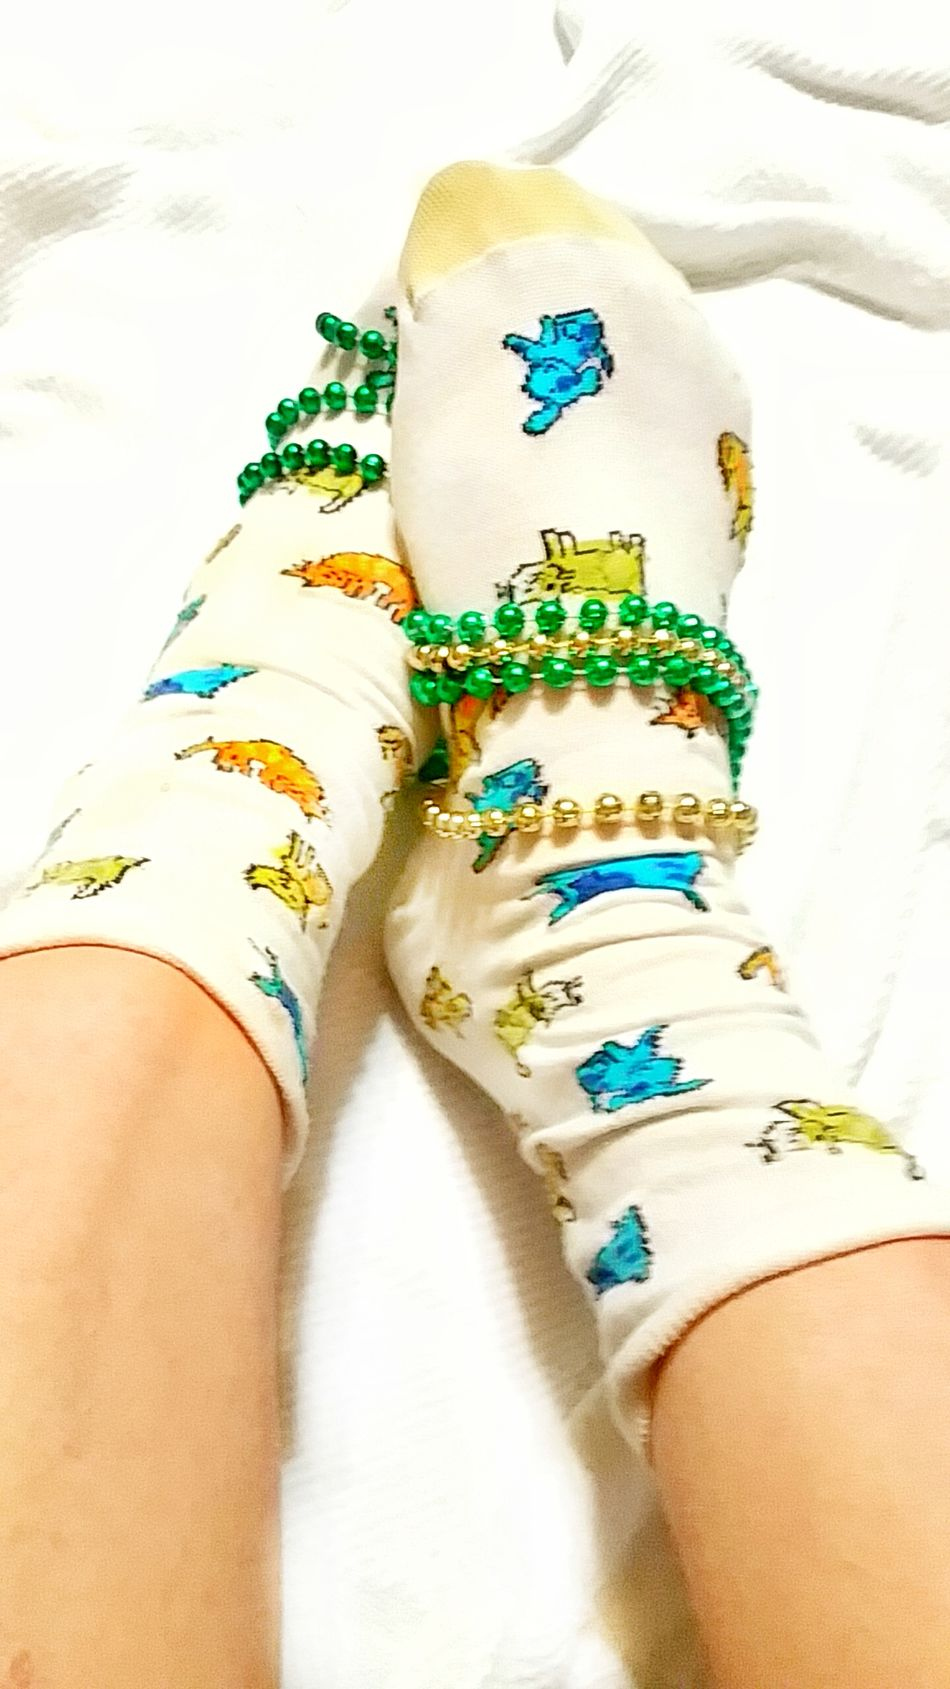 TK Maxx Socksie Beauty Women Socks Clothing Beads-necklace Multicolors  Soft Texture Marti Gras Cat Design Cat Socks Bright Colors Colorful Pattern Texture Beads Comfortable Multi Colored Funny Socks Softness Foot Design Cute Socks Colorful Socks Multicolors